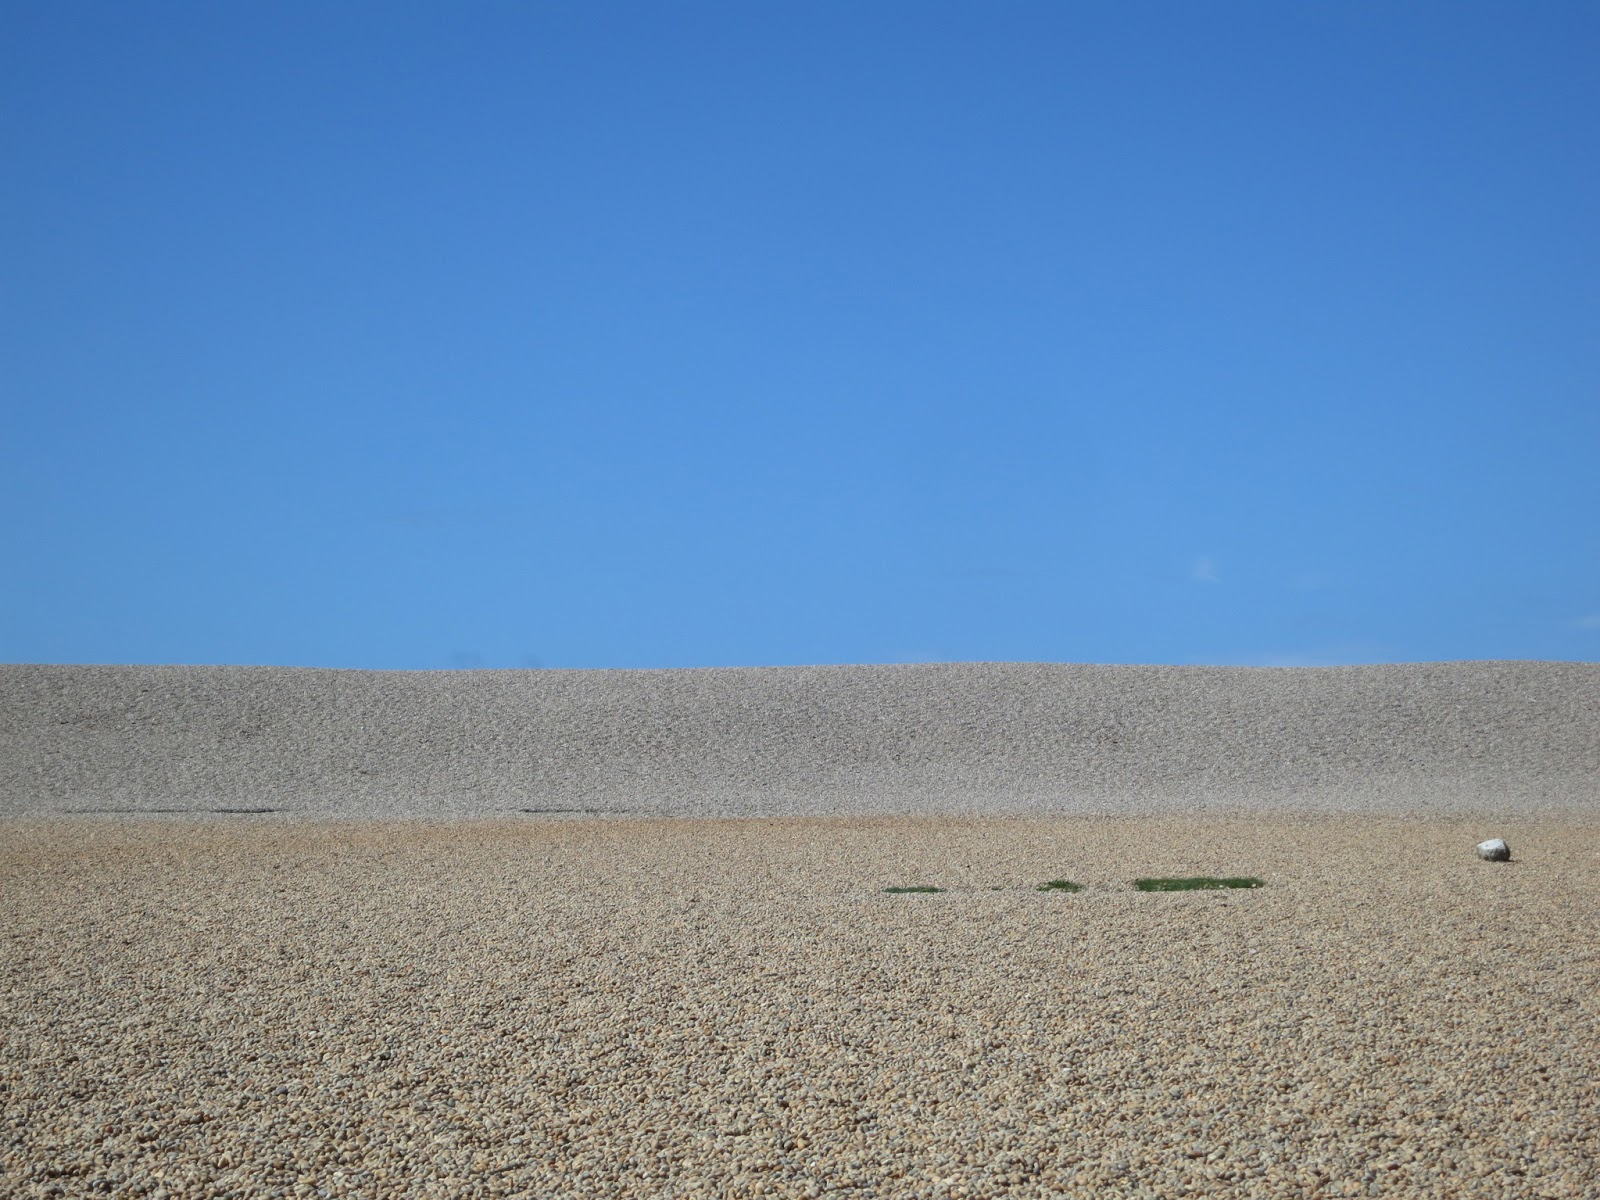 Looking up at Chesil Beach (a huge bank of pebbles) which runs parallel with the road.